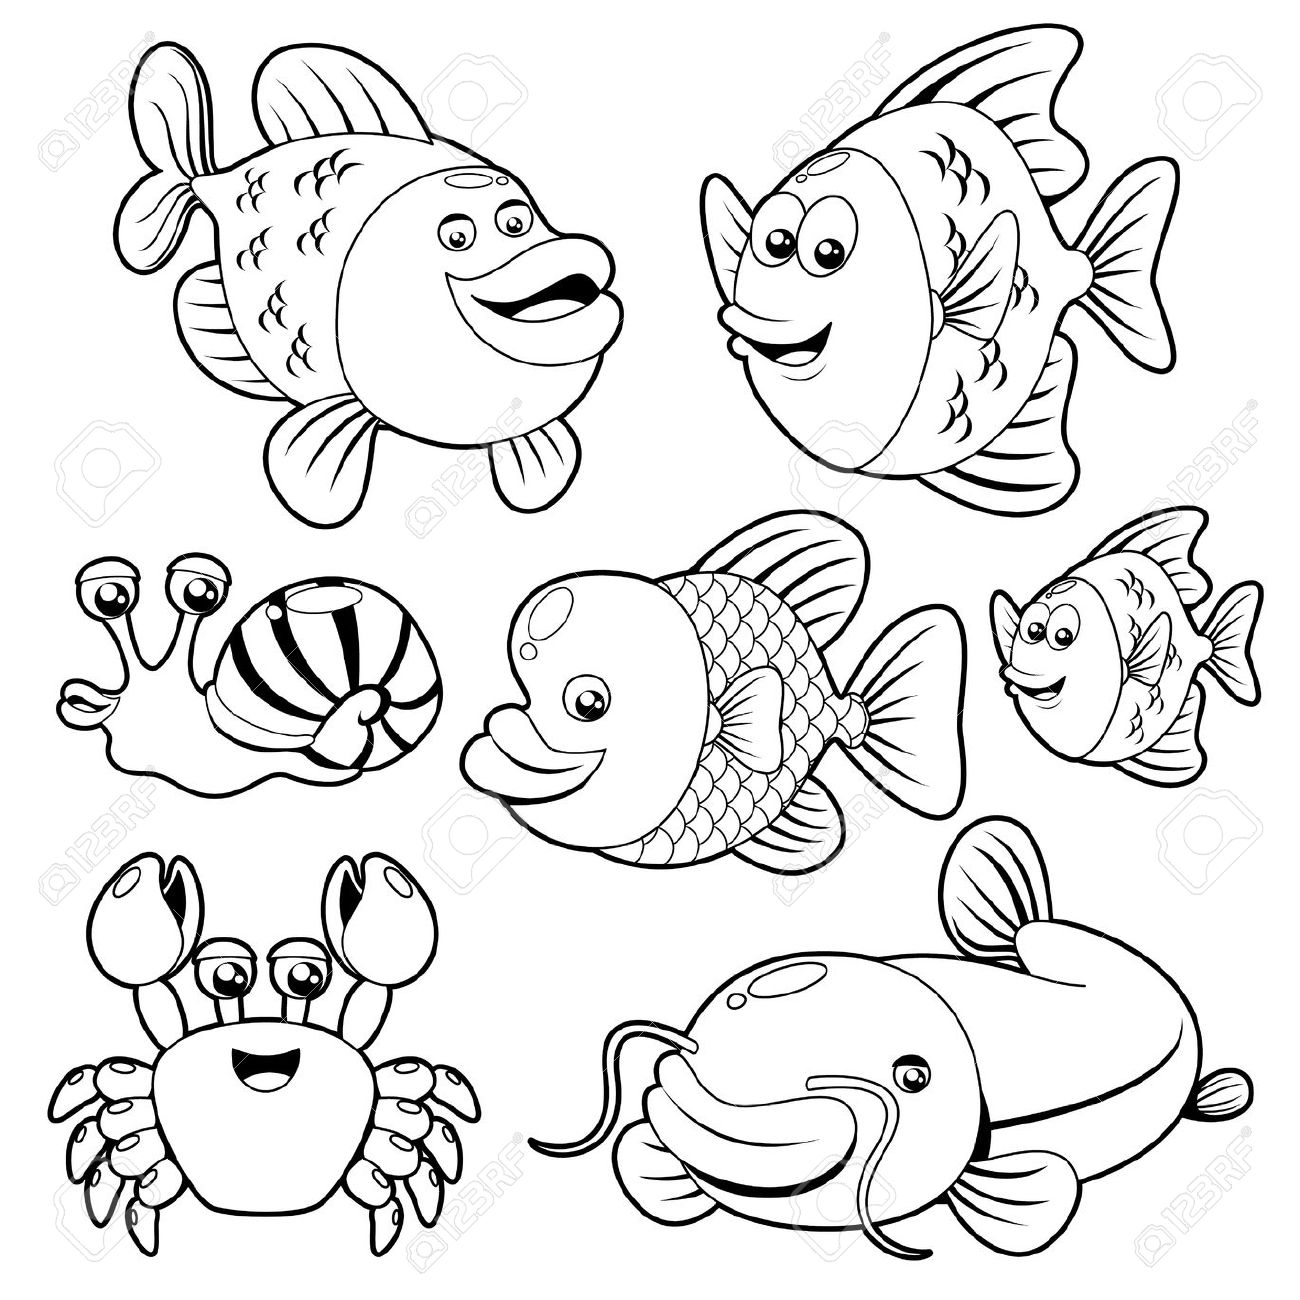 Ocean Animals Clipart Black And White Fishs black and white.